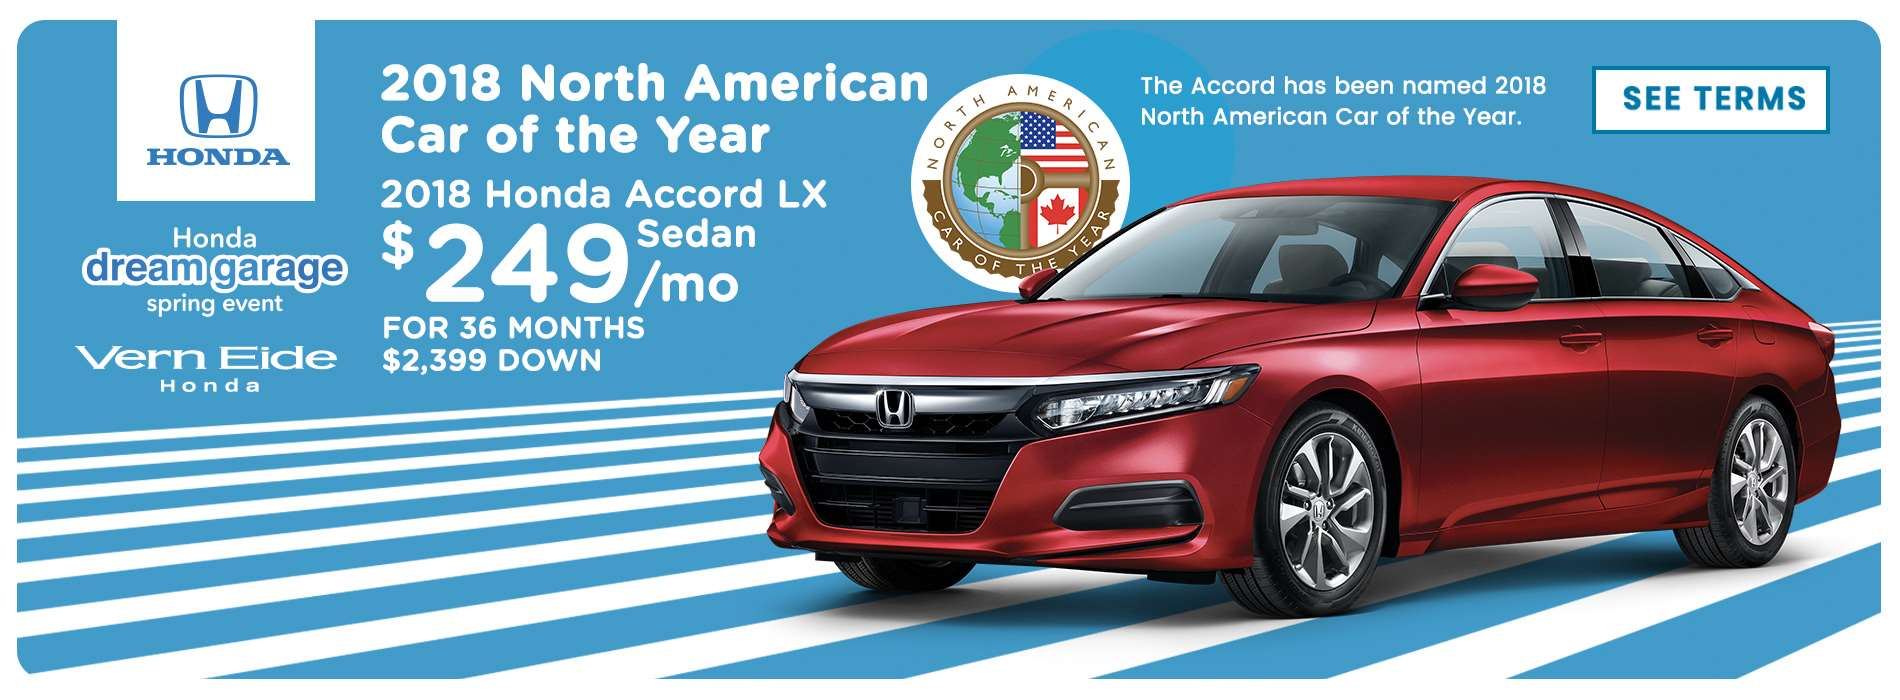 2018 North American Car of the Year